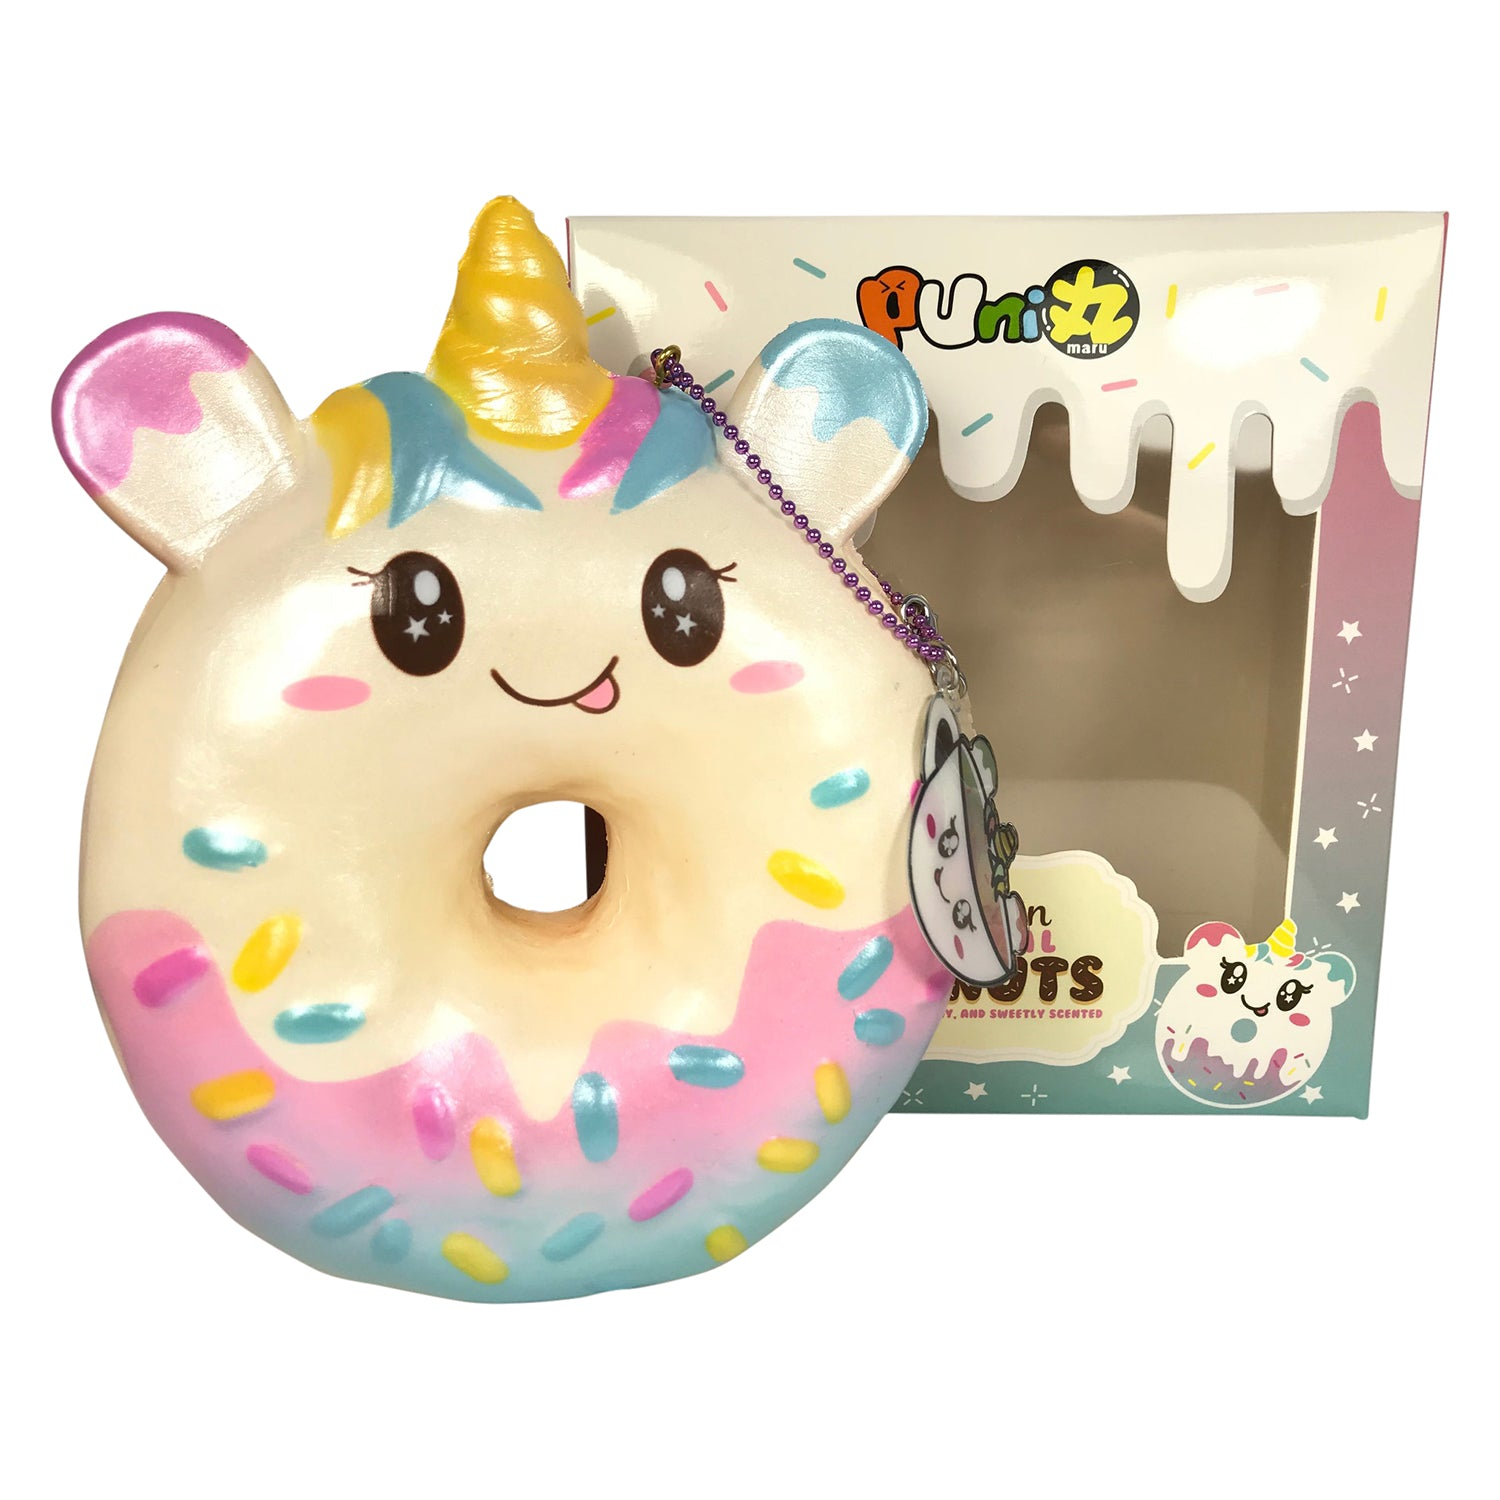 Squishy Donut Unicorn : Puni Maru Jumbo UNICORN Donut! SCENTED! Jenna Lyn Squishies and Accessories